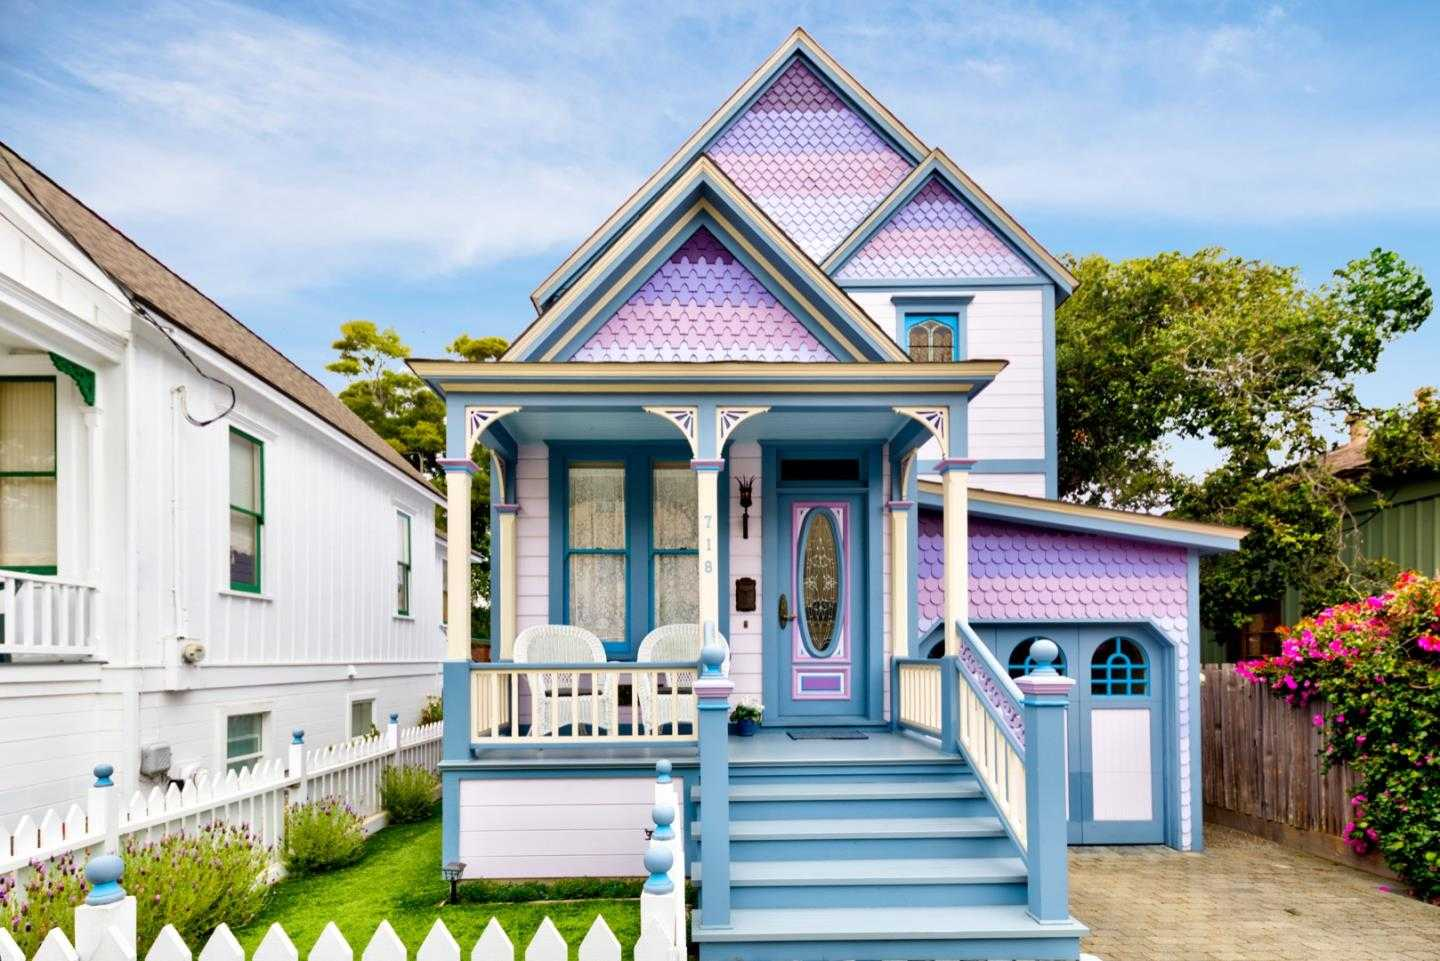 $959,000 - 3Br/2Ba -  for Sale in Pacific Grove